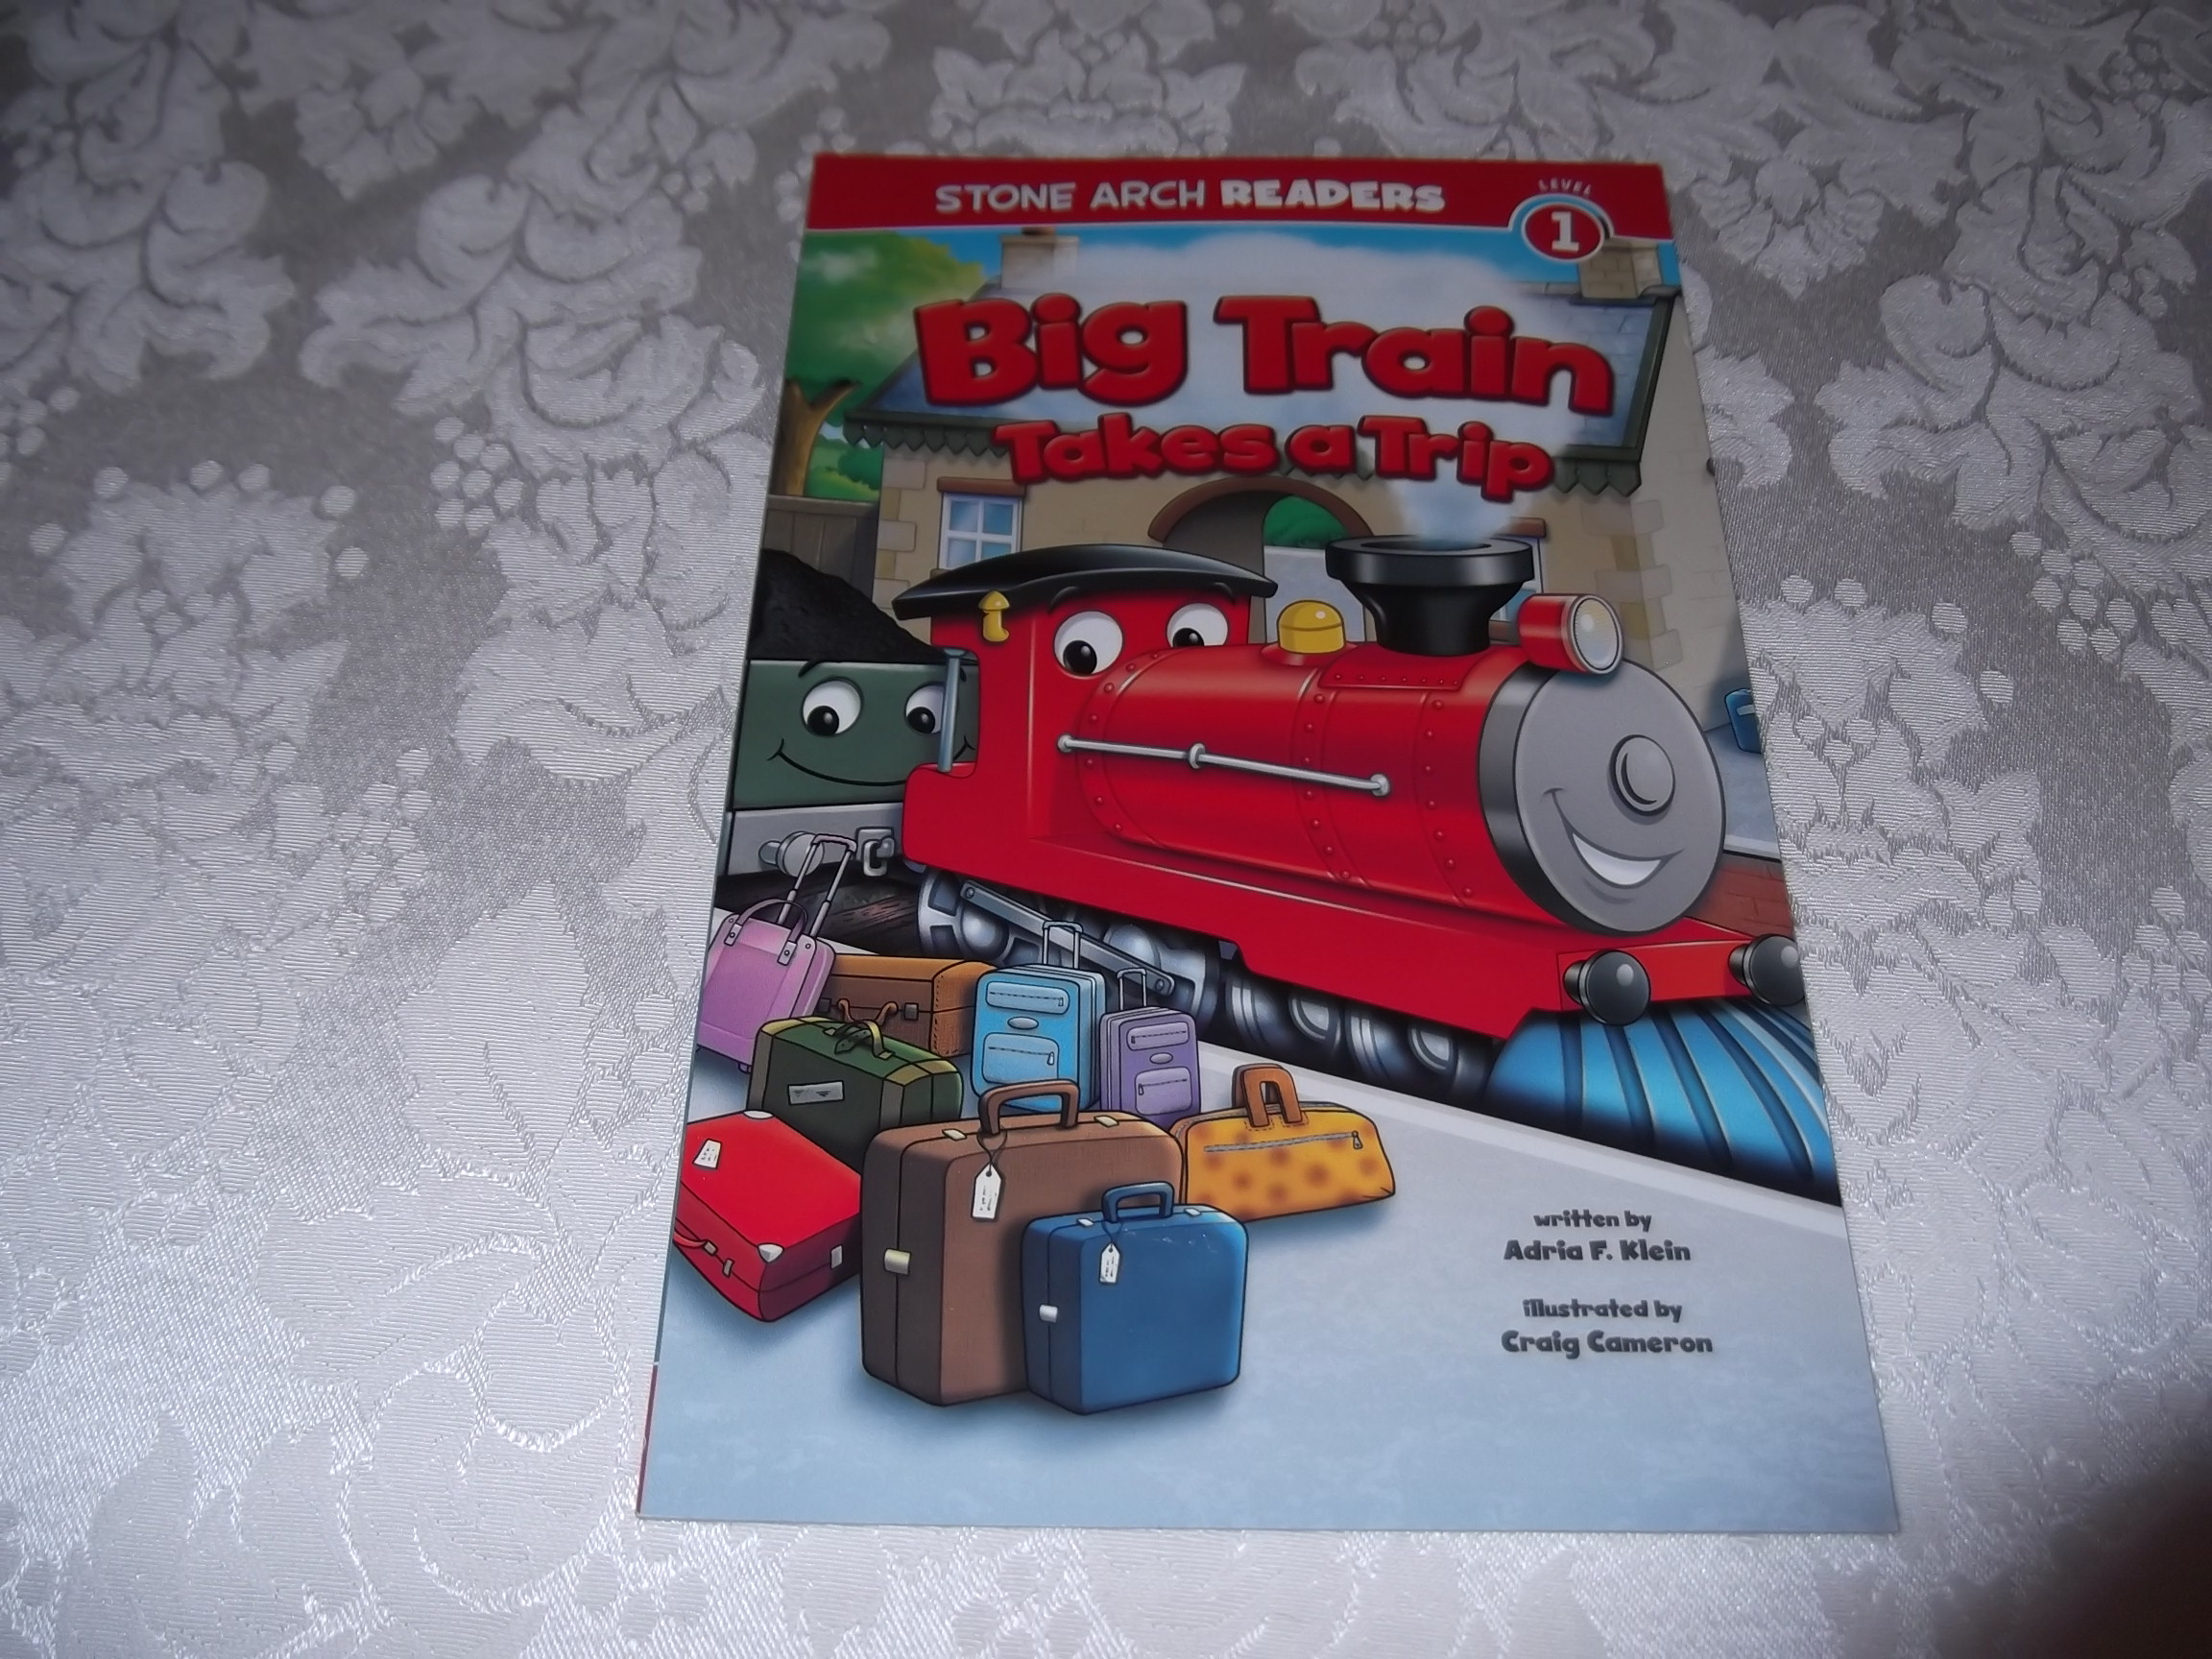 Big Train Takes A Trip Adria F. Klein Stone Arch Reader Level 1 brand new sc